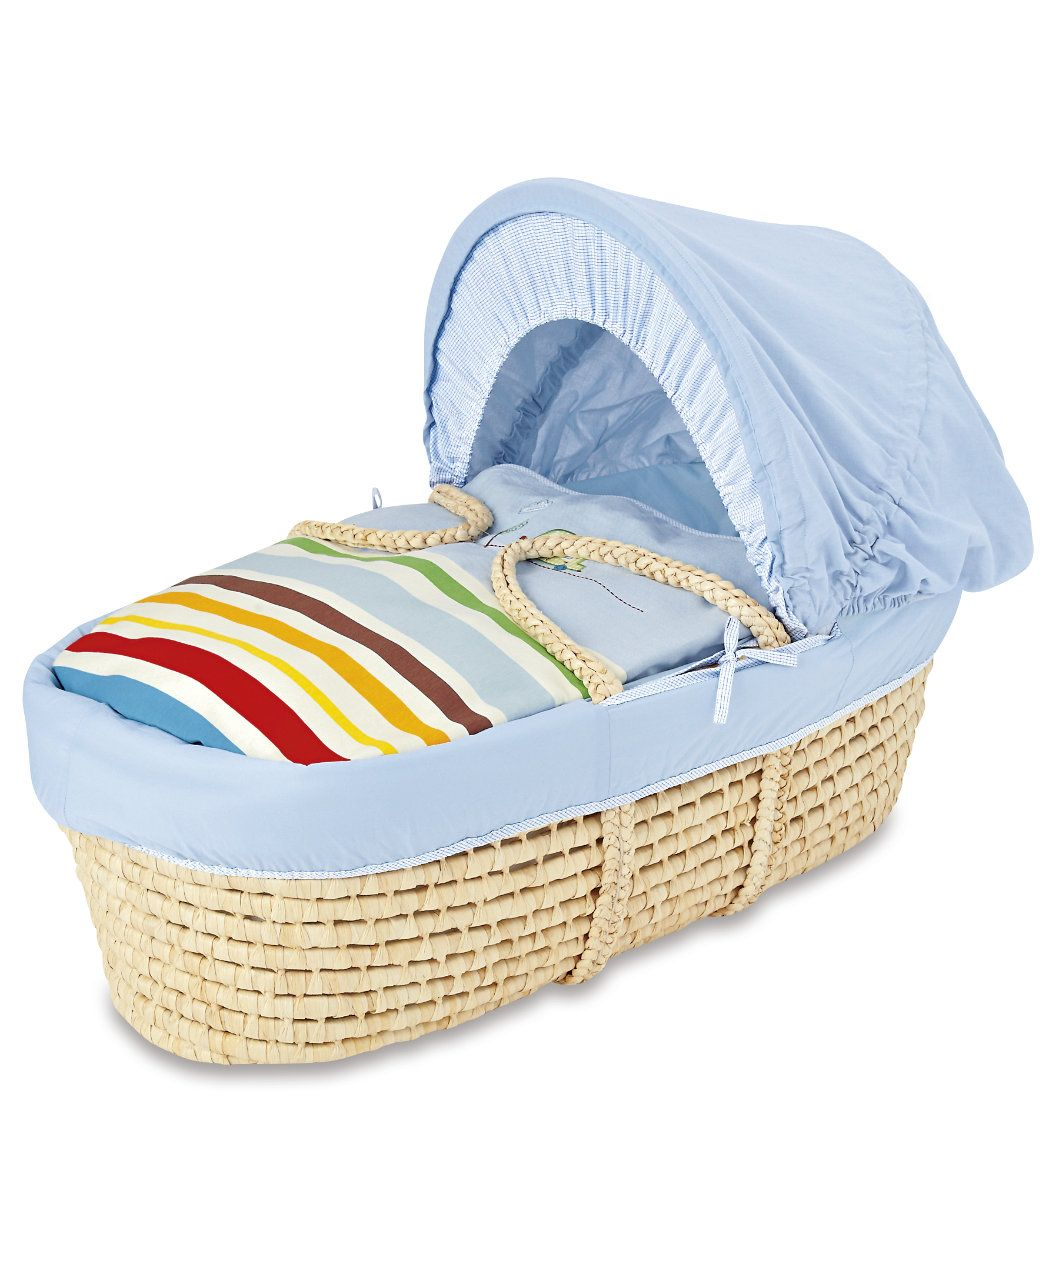 Wicker crib for sale durban - Mothercare Happy Town Moses Basket